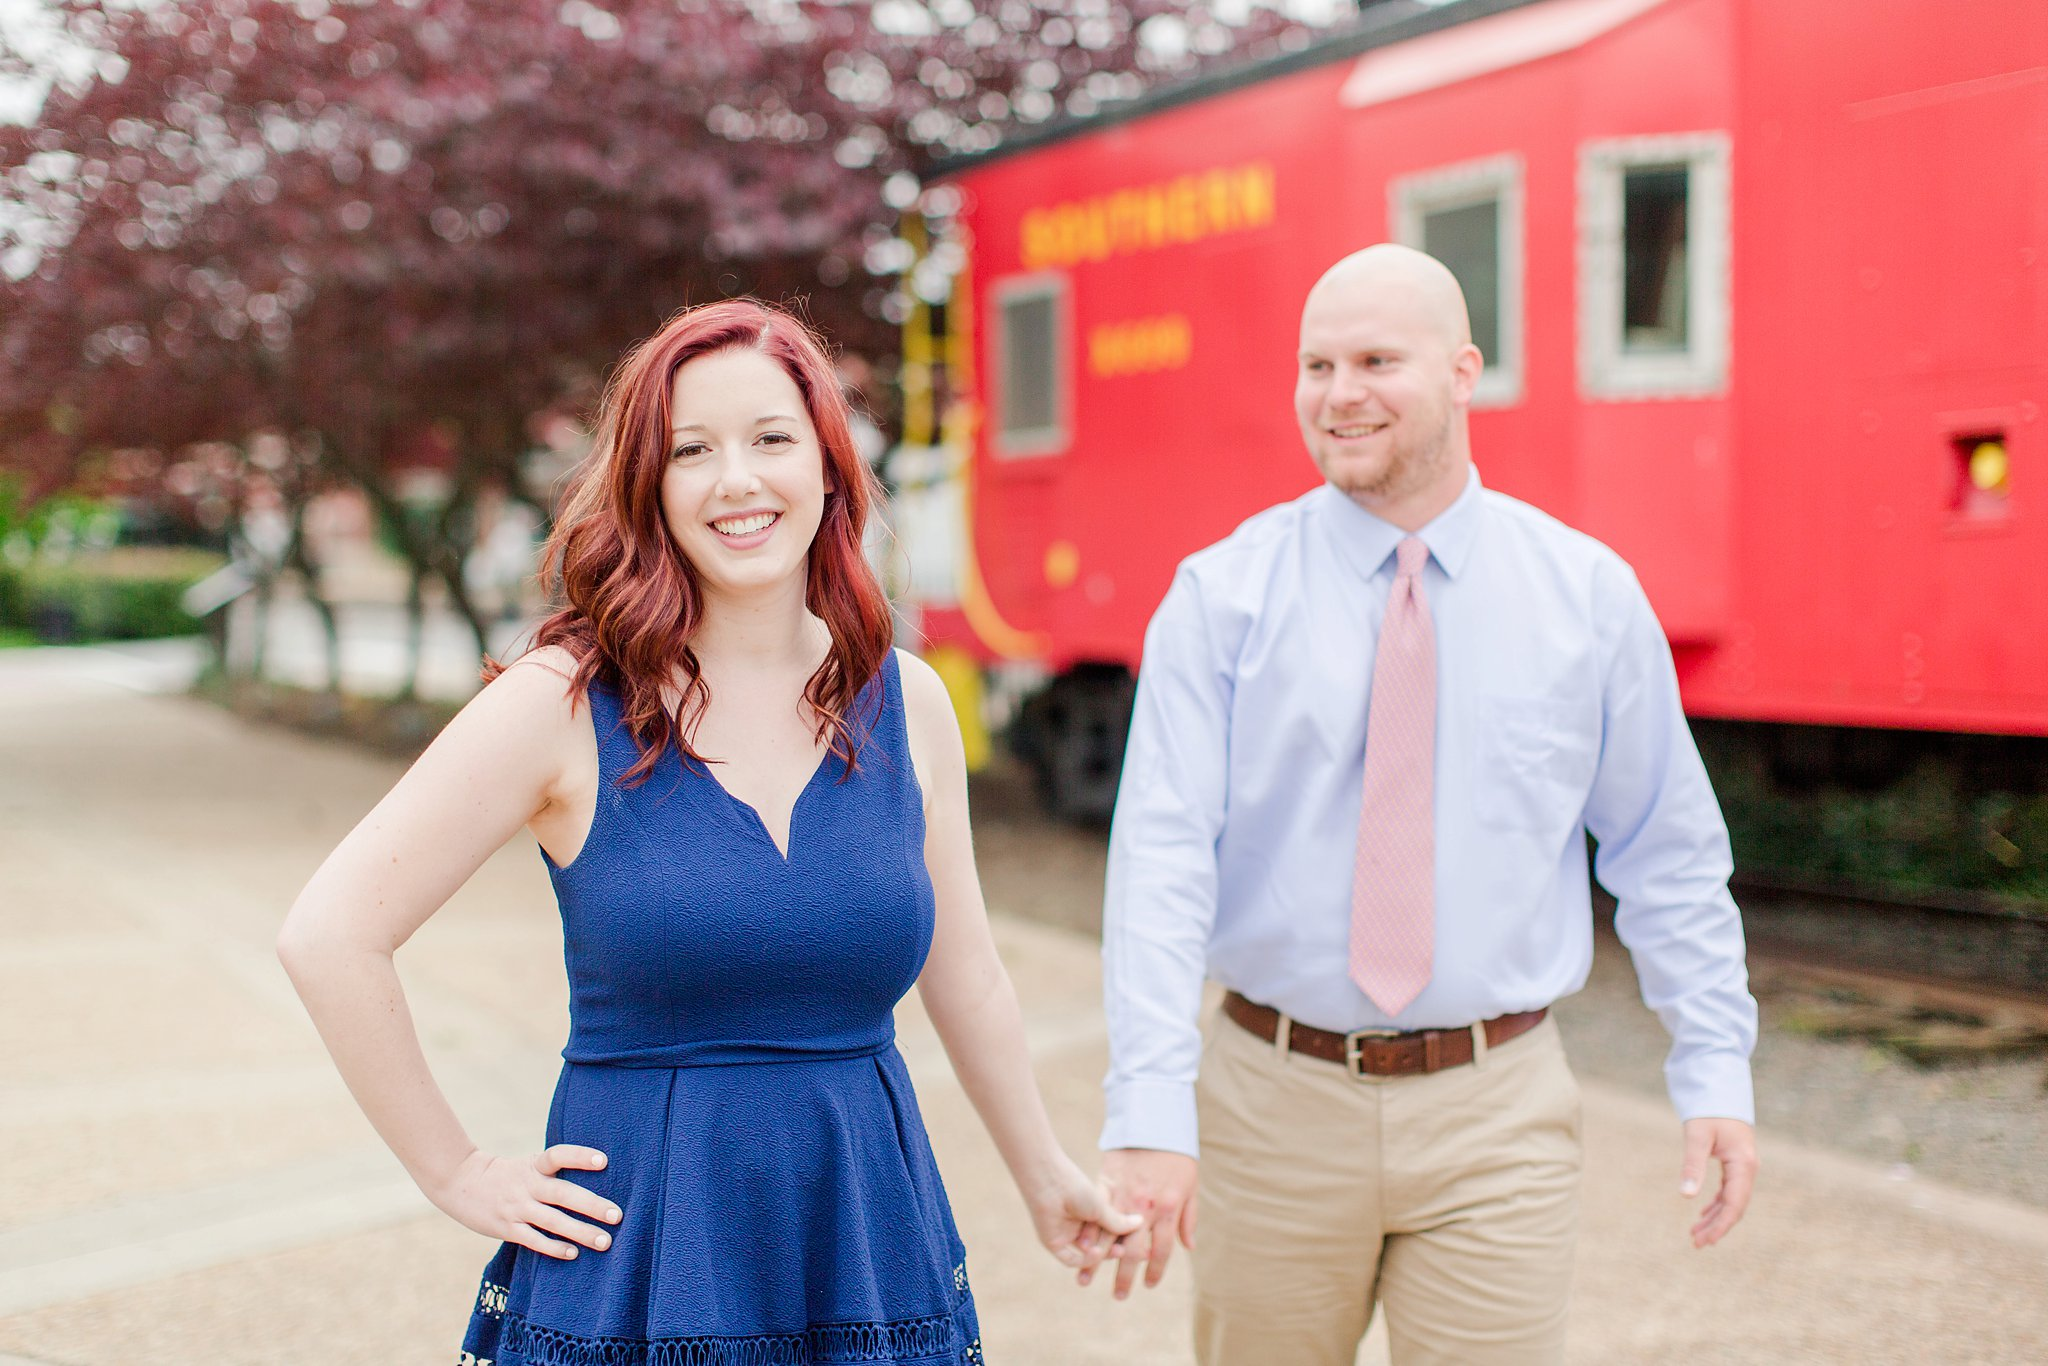 Old Town Manassas Battlefield Engagement Photos Virginia Wedding Photographer Jessica & Jason-9.jpg